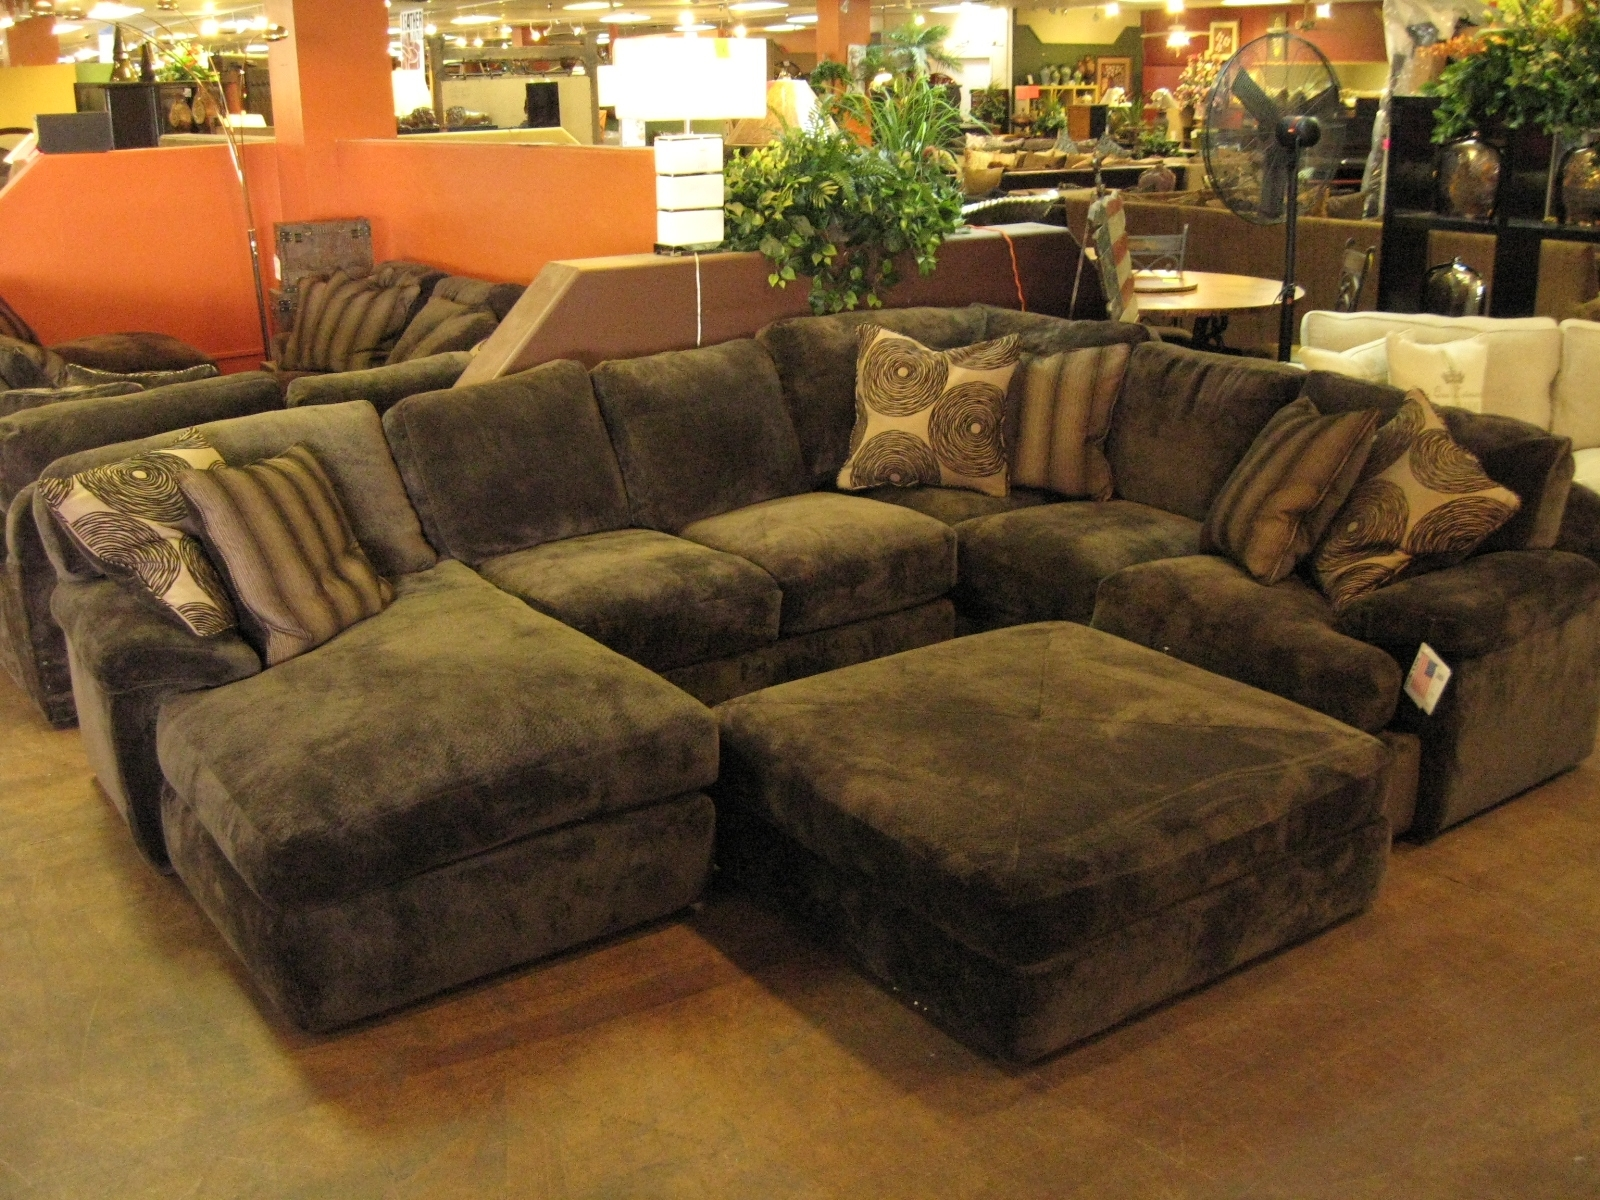 Black Velvet Fabric Sectional Sleeper Sofa With Chaise Lounge And Regarding Sectional Sleeper Sofas With Ottoman (View 4 of 10)